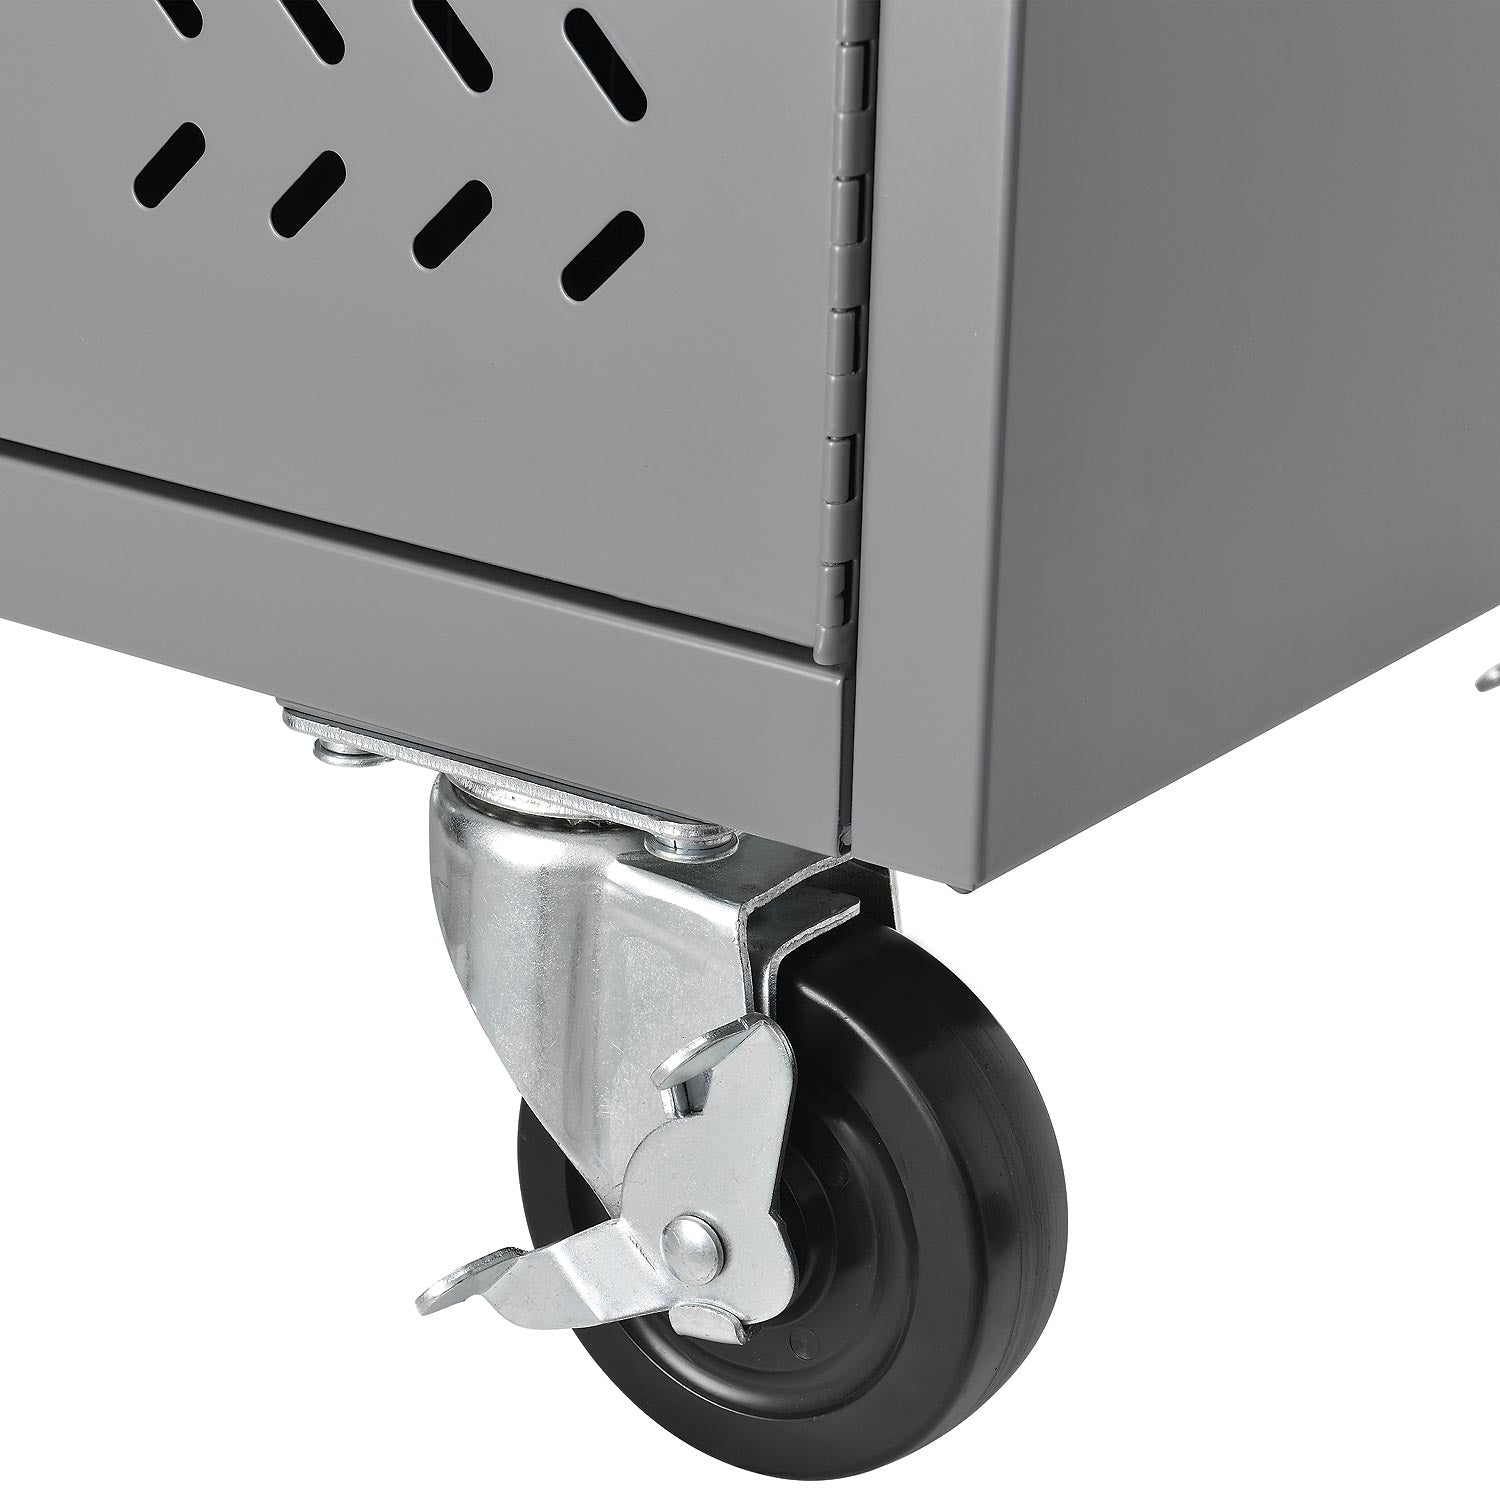 Charging cart with lockable wheels